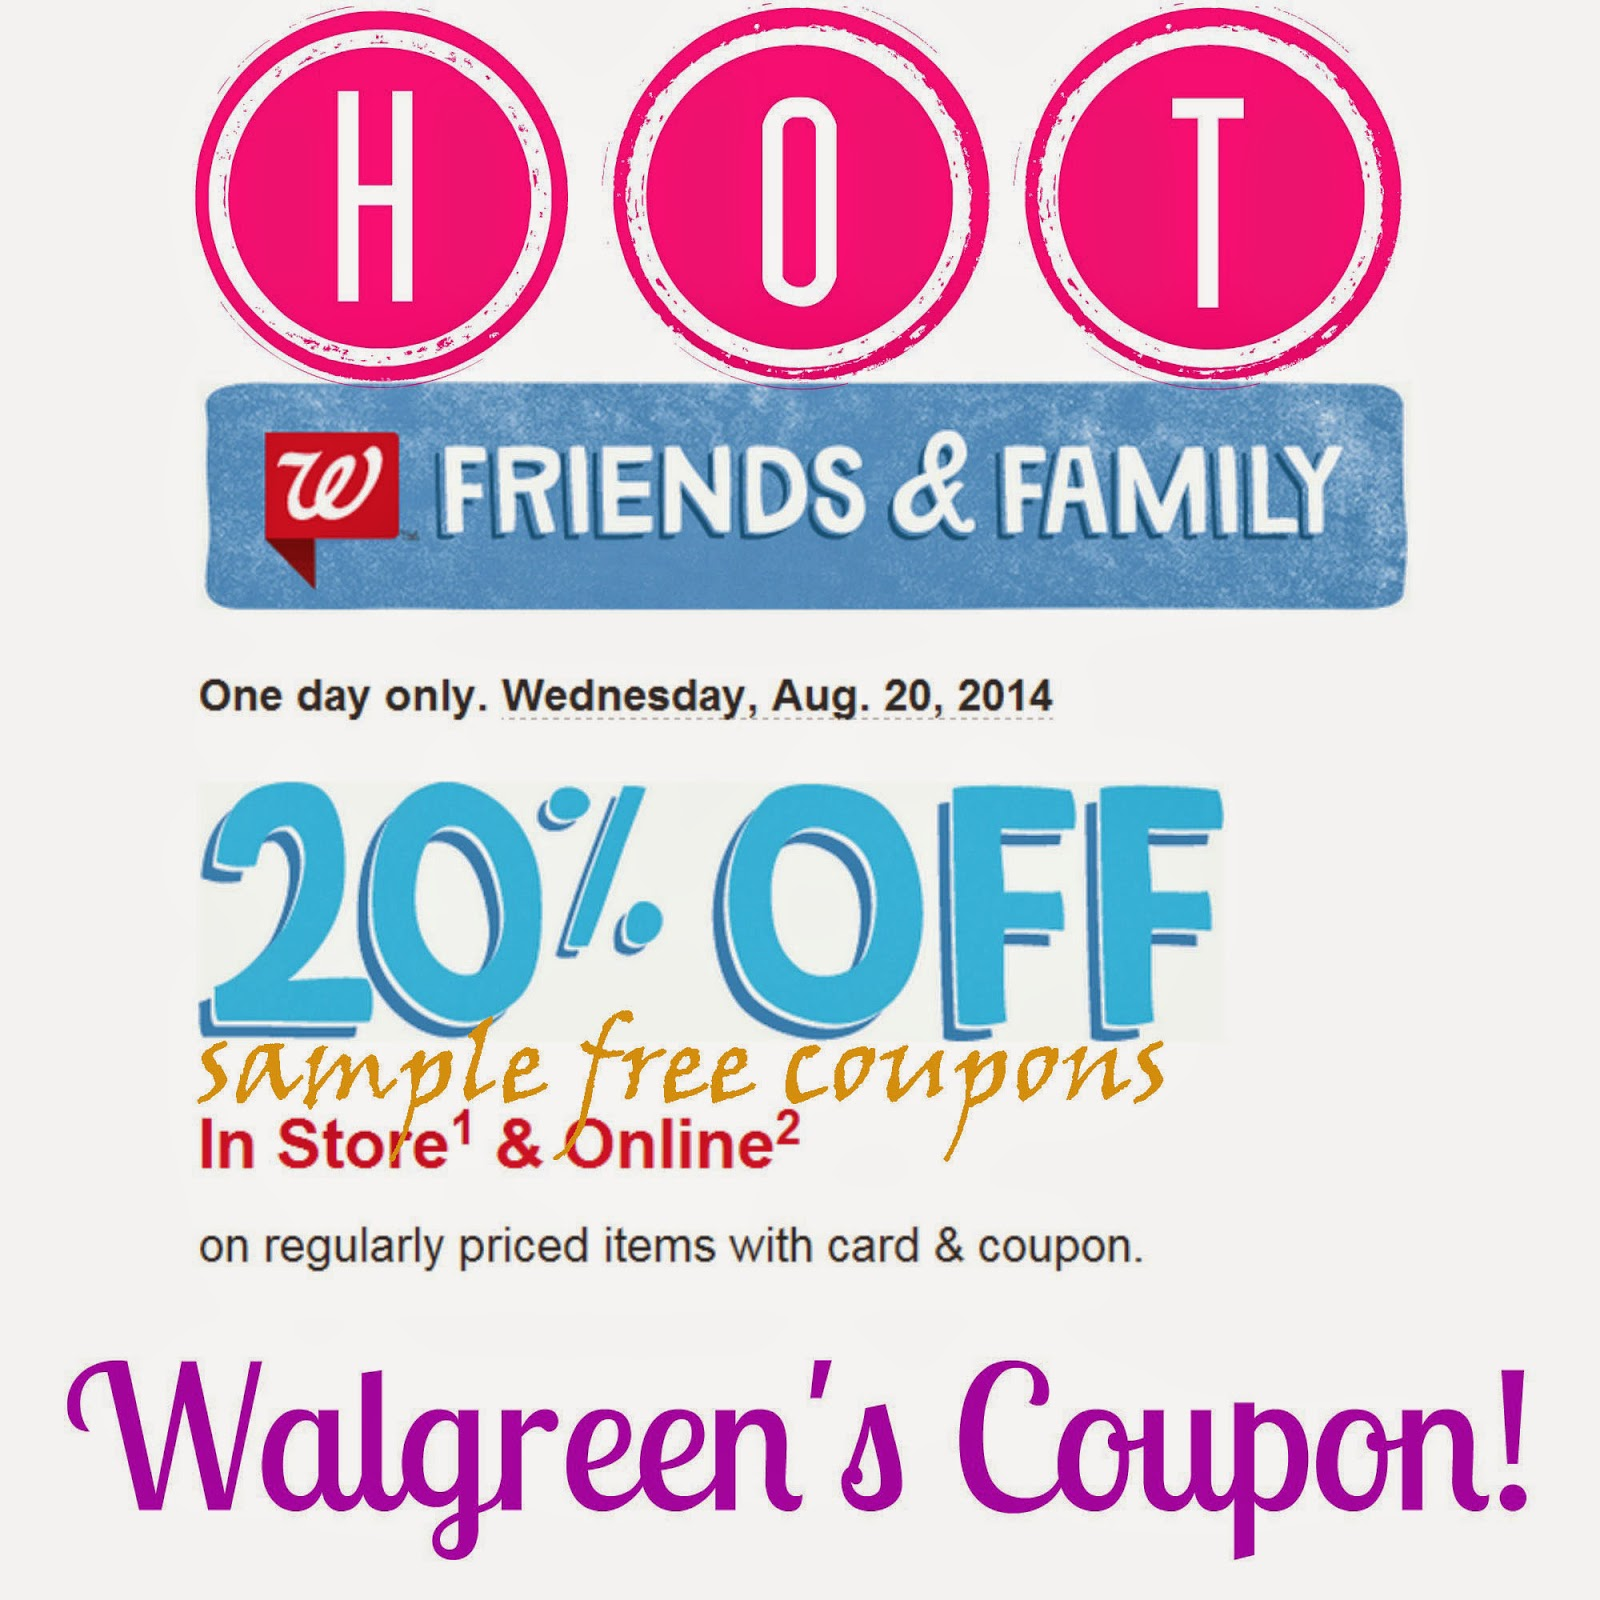 Walgreens coupon code for photos